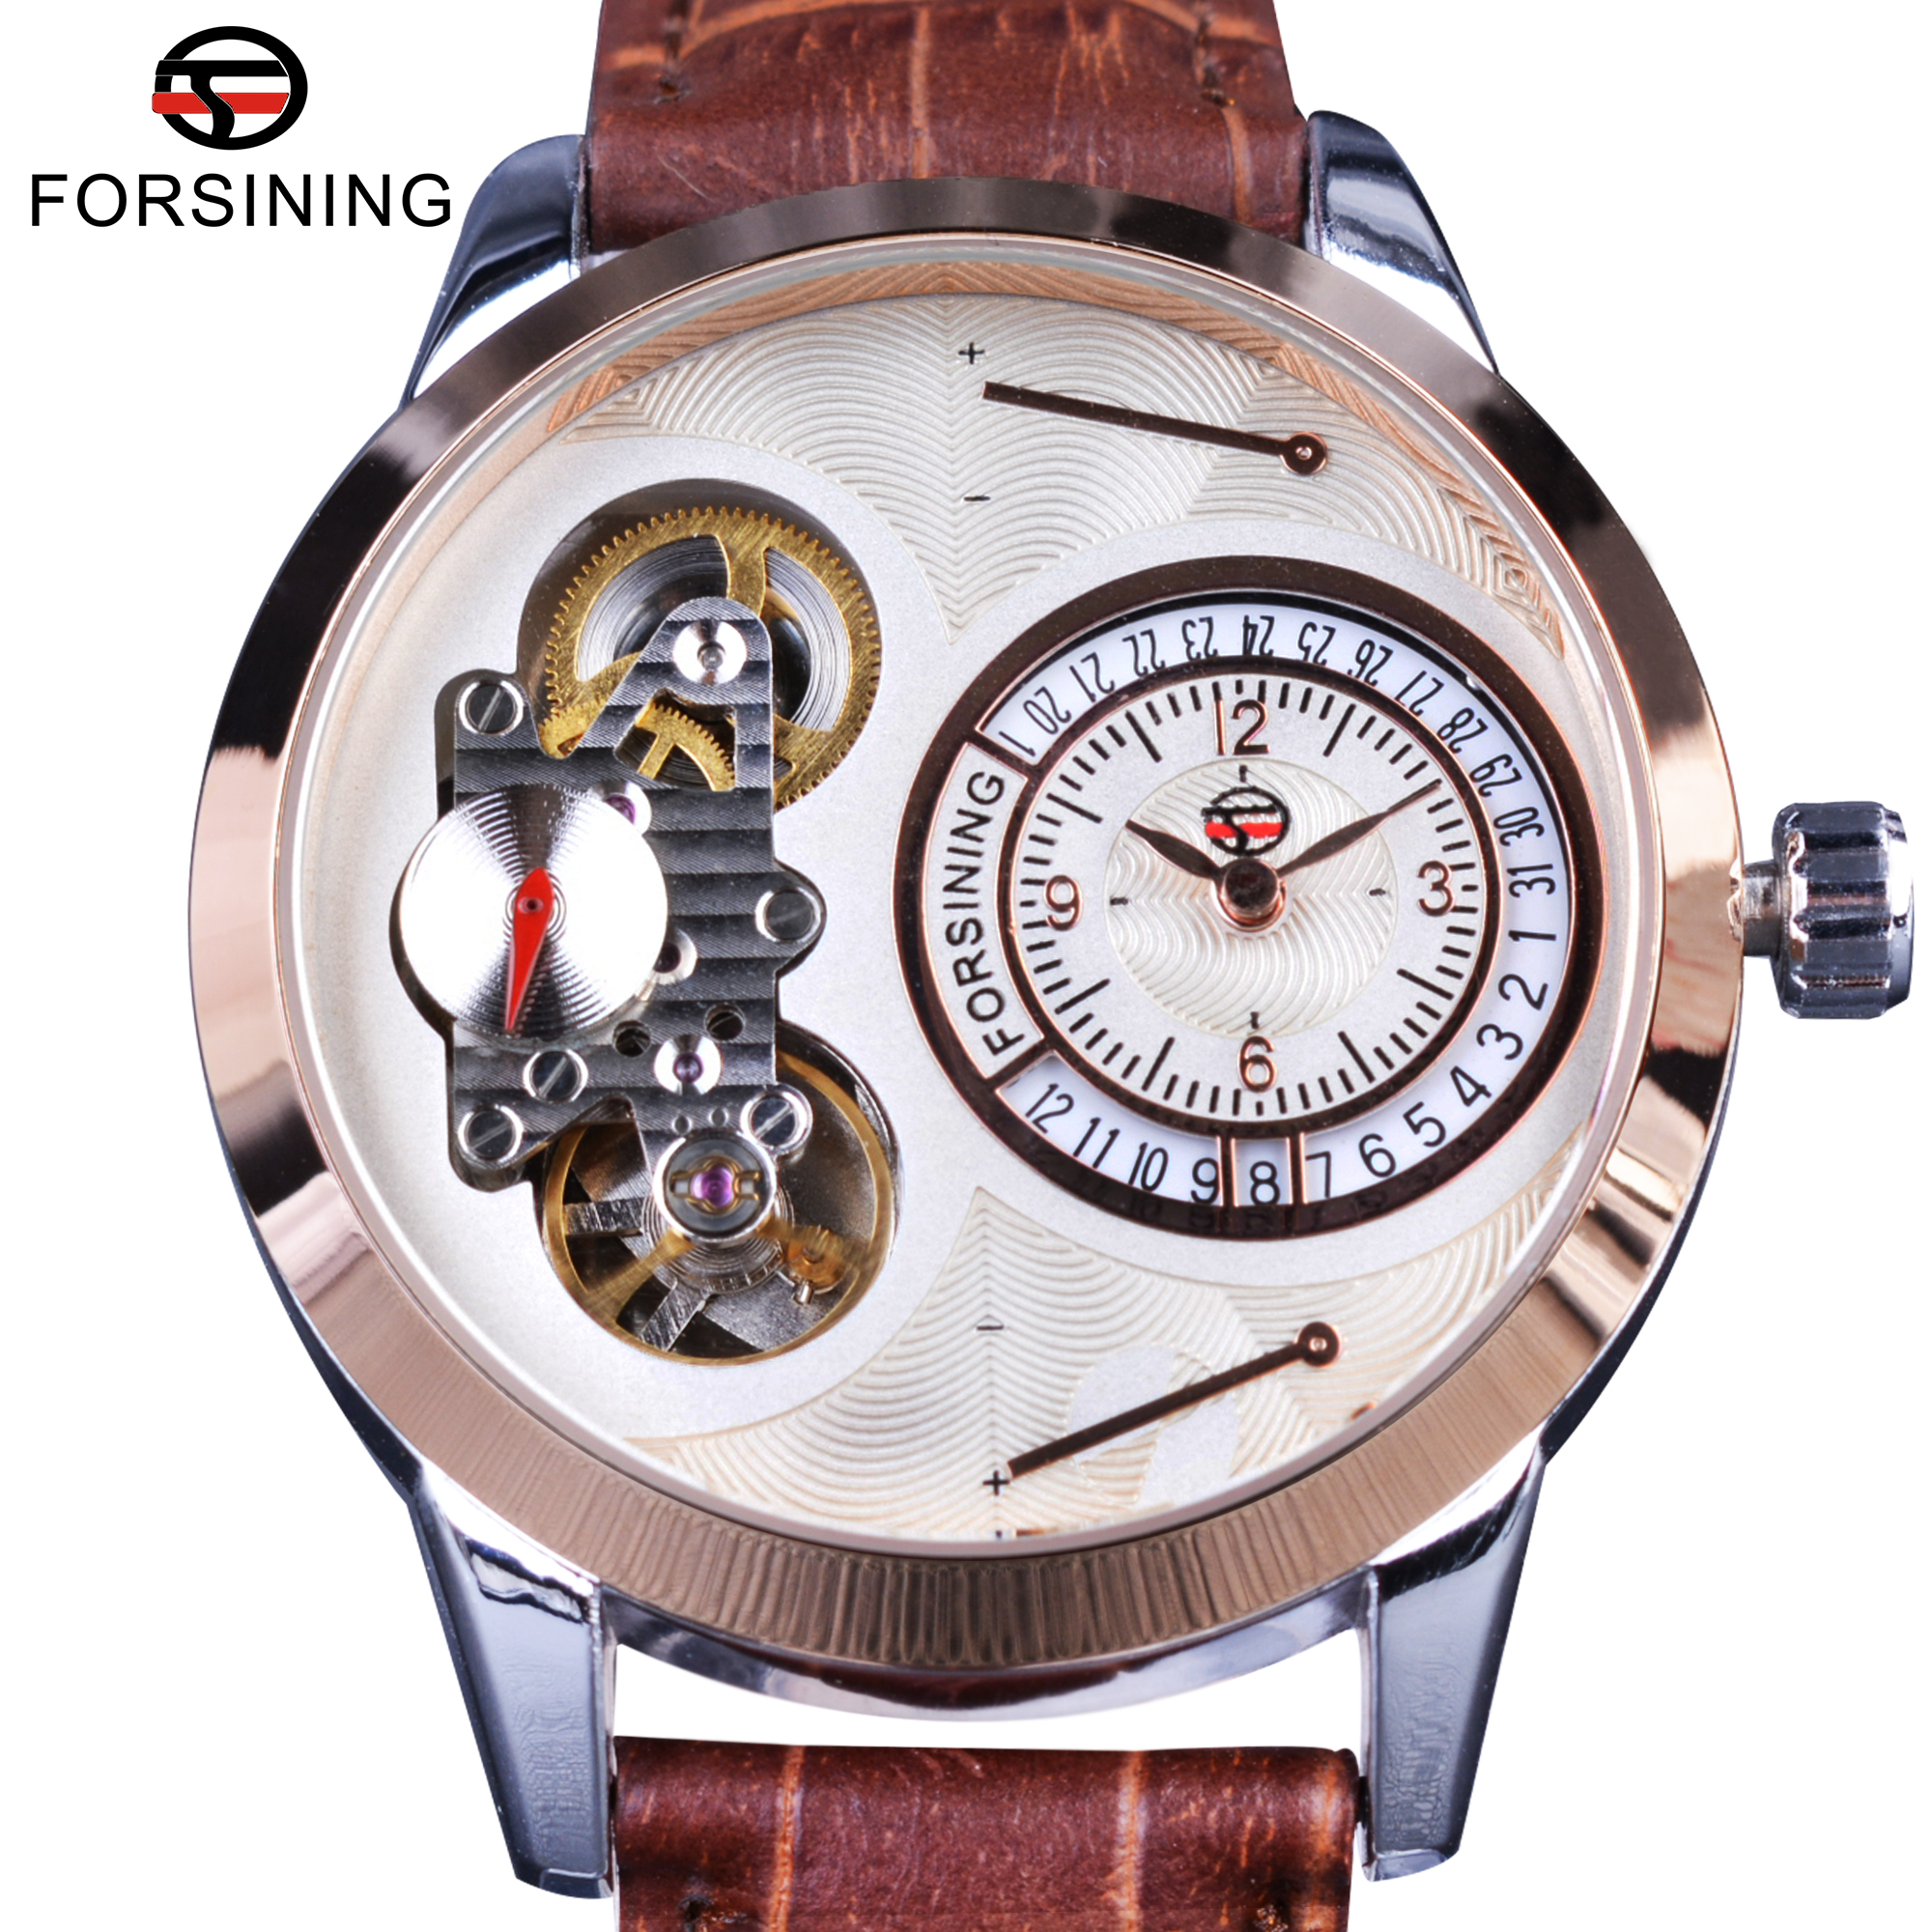 Forsining Fashion Second Dial Tourbillion Rose Golden Case Brown Genuine Leather Men Watches Top Brand Luxury Automatic Watch forsining famous brand watch 2018 new luxury men automatic watches gold case dial genuine leather strap fashion tourbillon watch